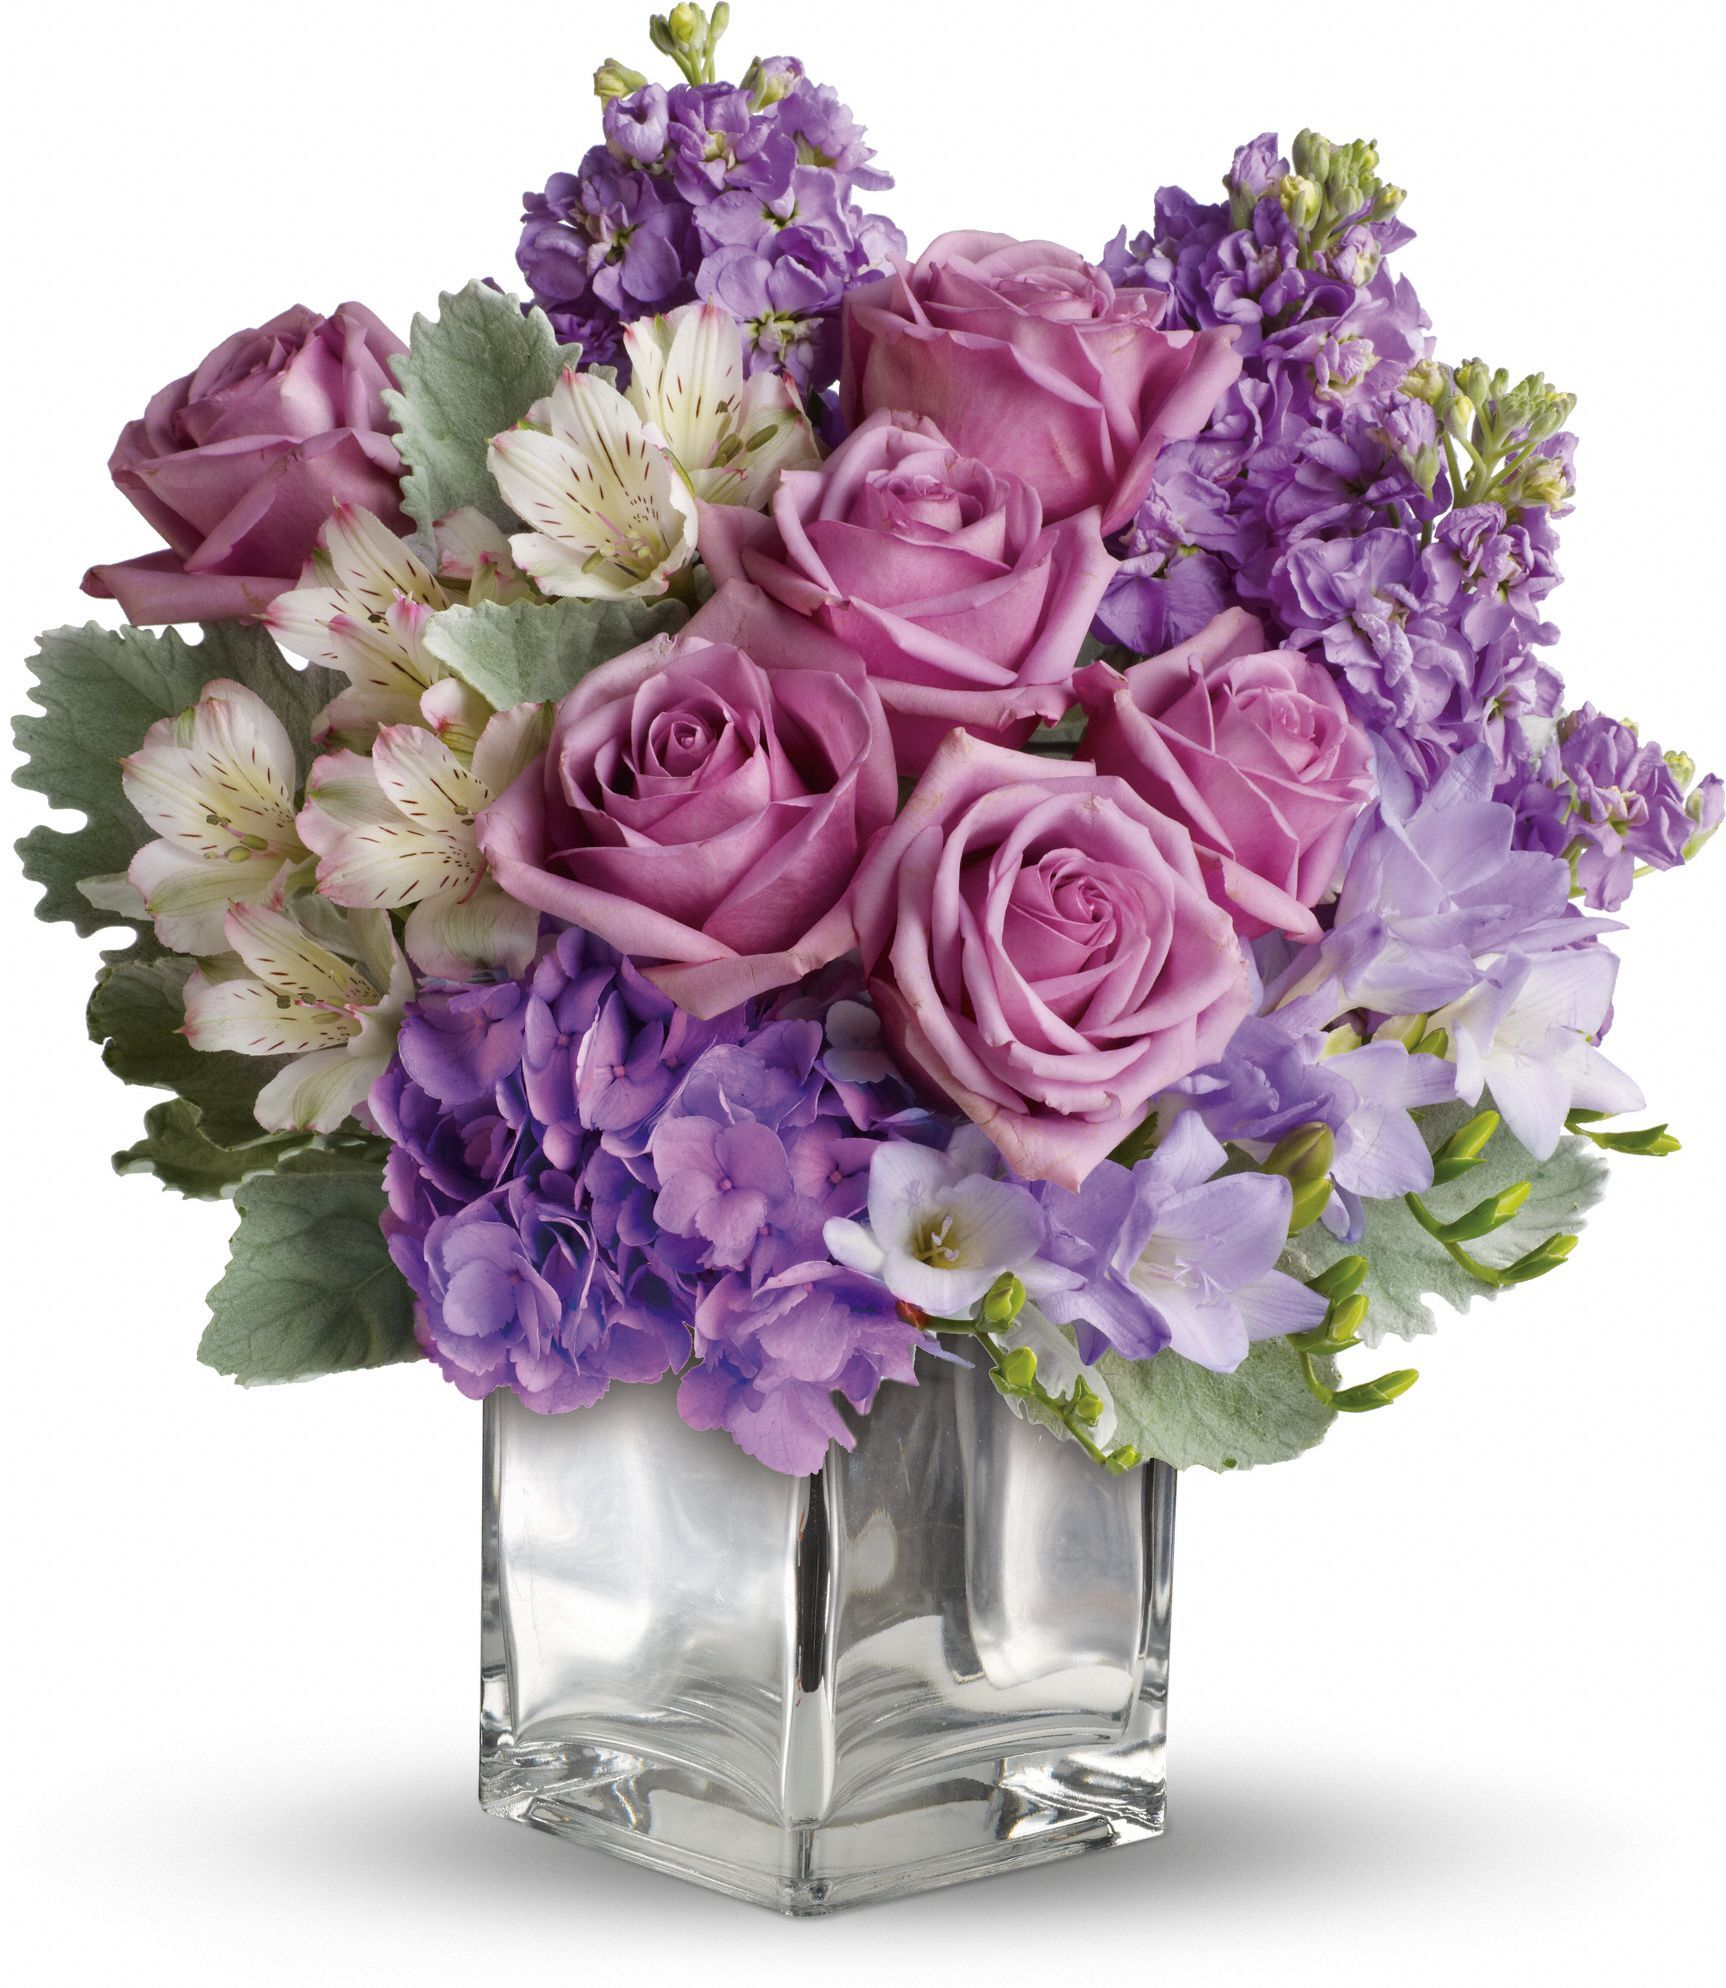 Sweet As Sugar By Teleflora Save 25% On This Bouquet And